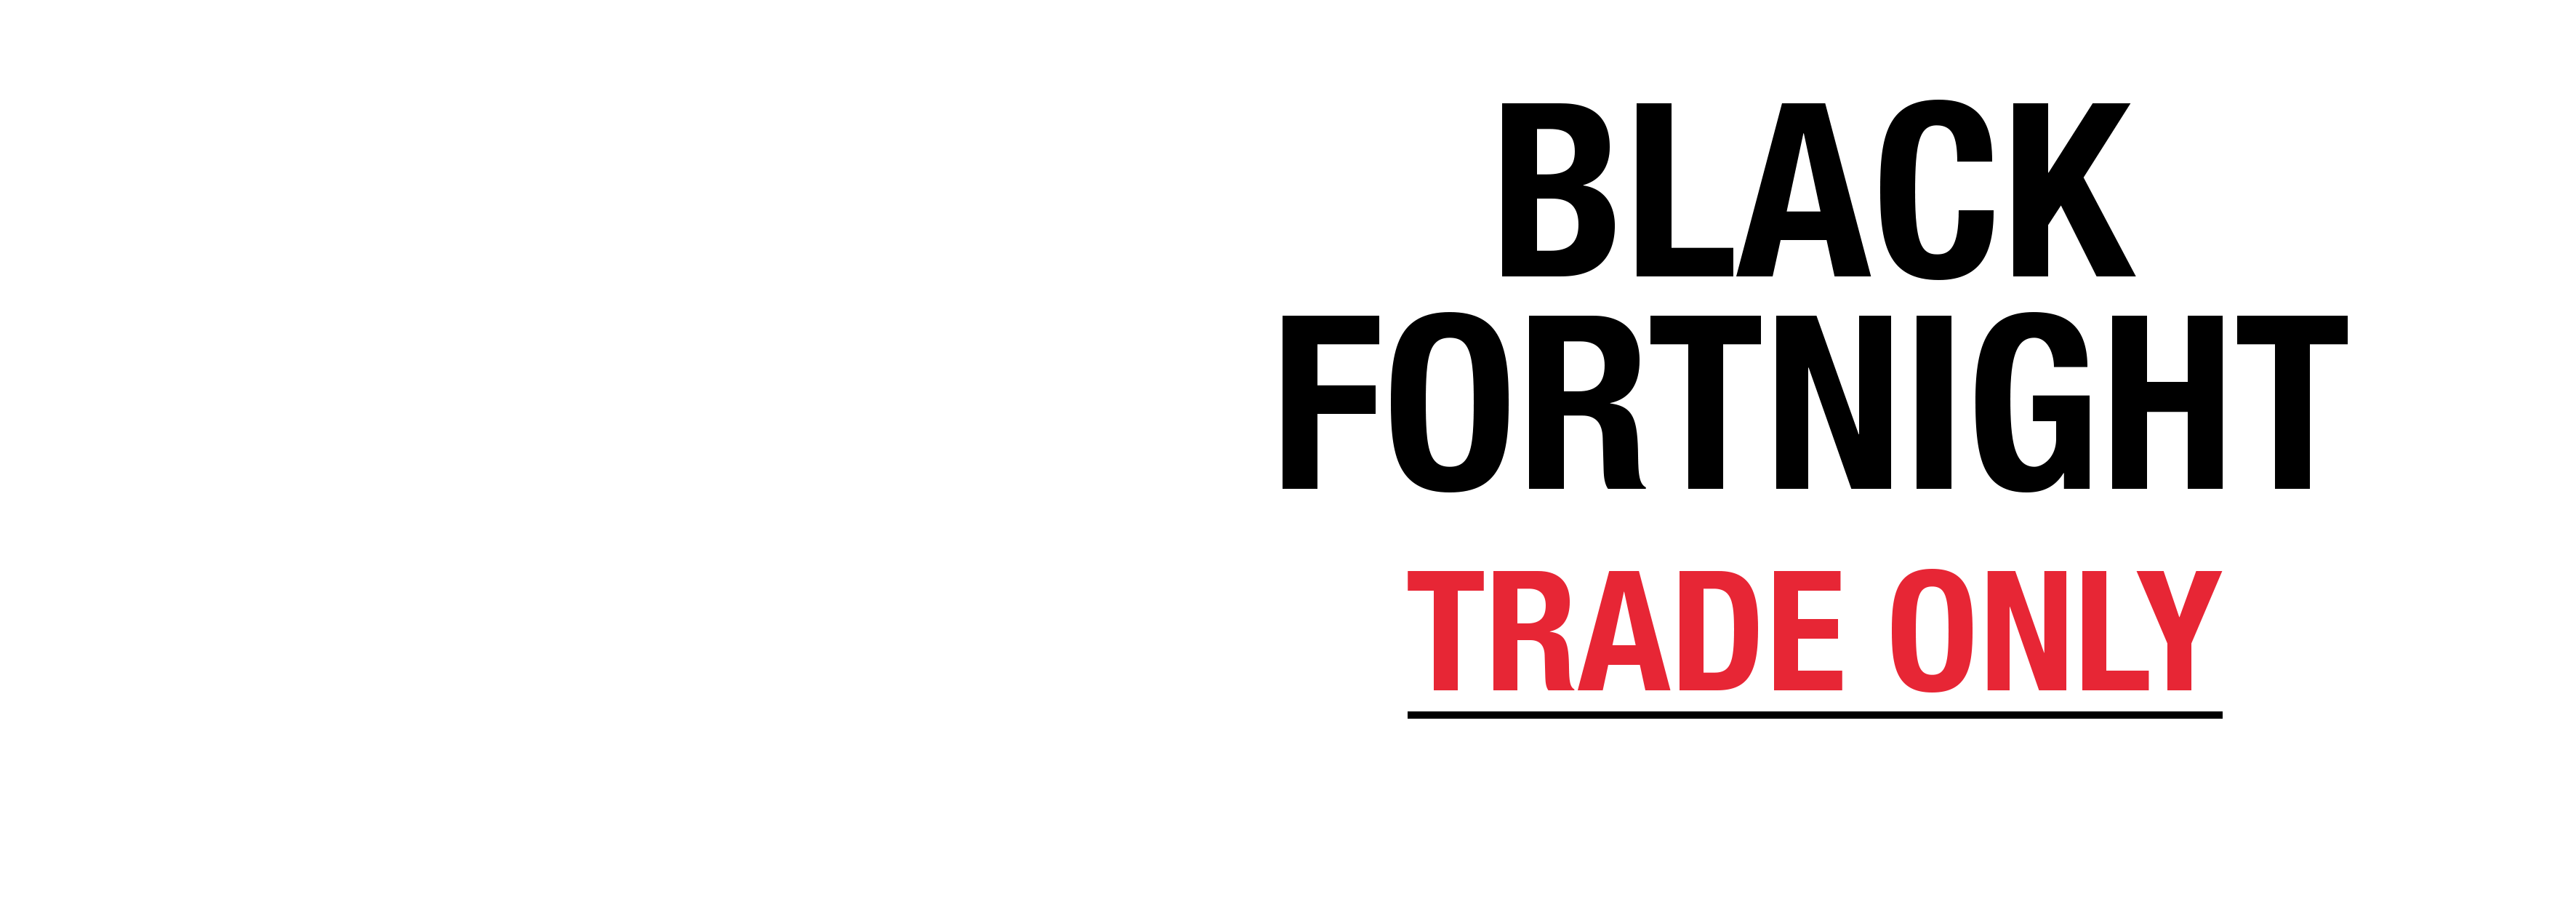 Black Fortnight Trade Deals